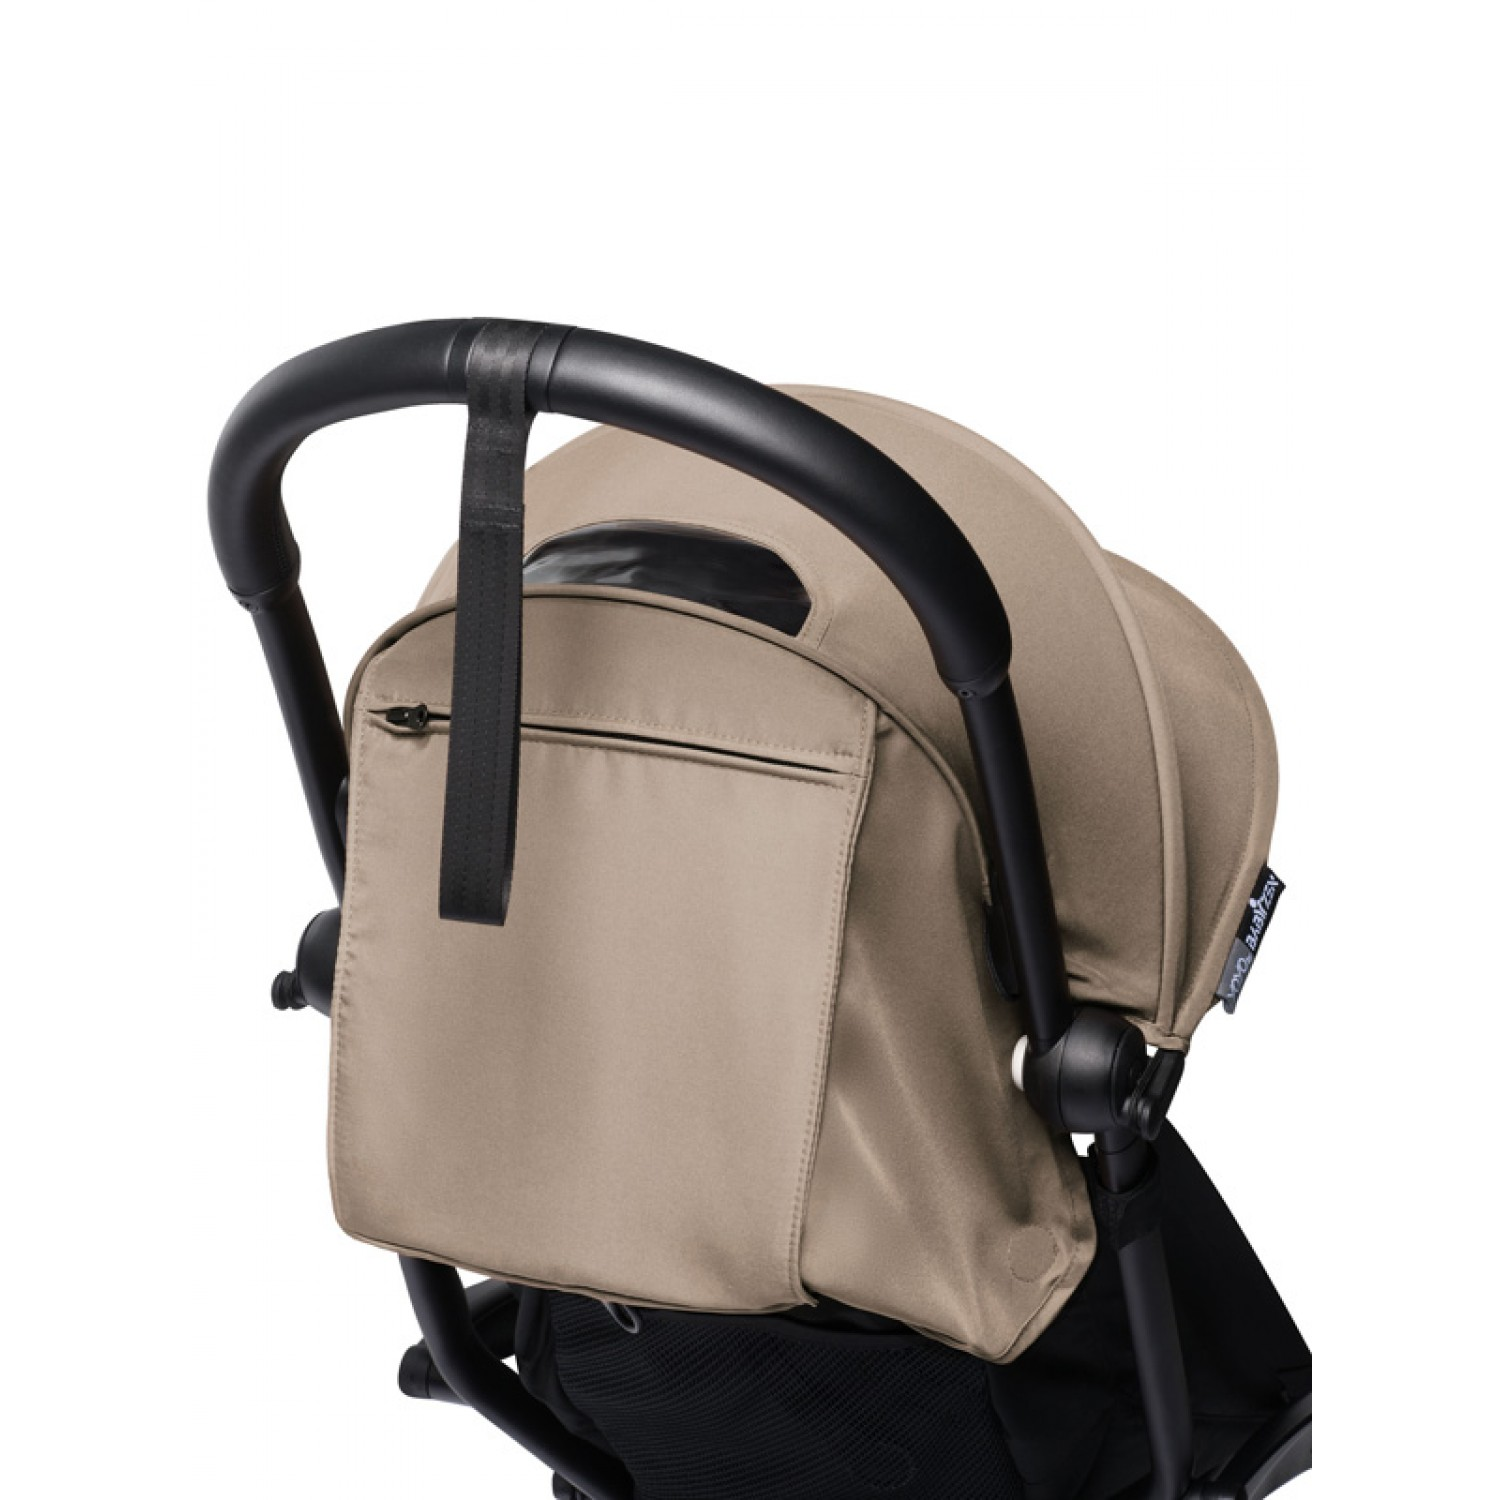 BABYZEN stroller YOYO2 6+ | Black Chassis Taupe